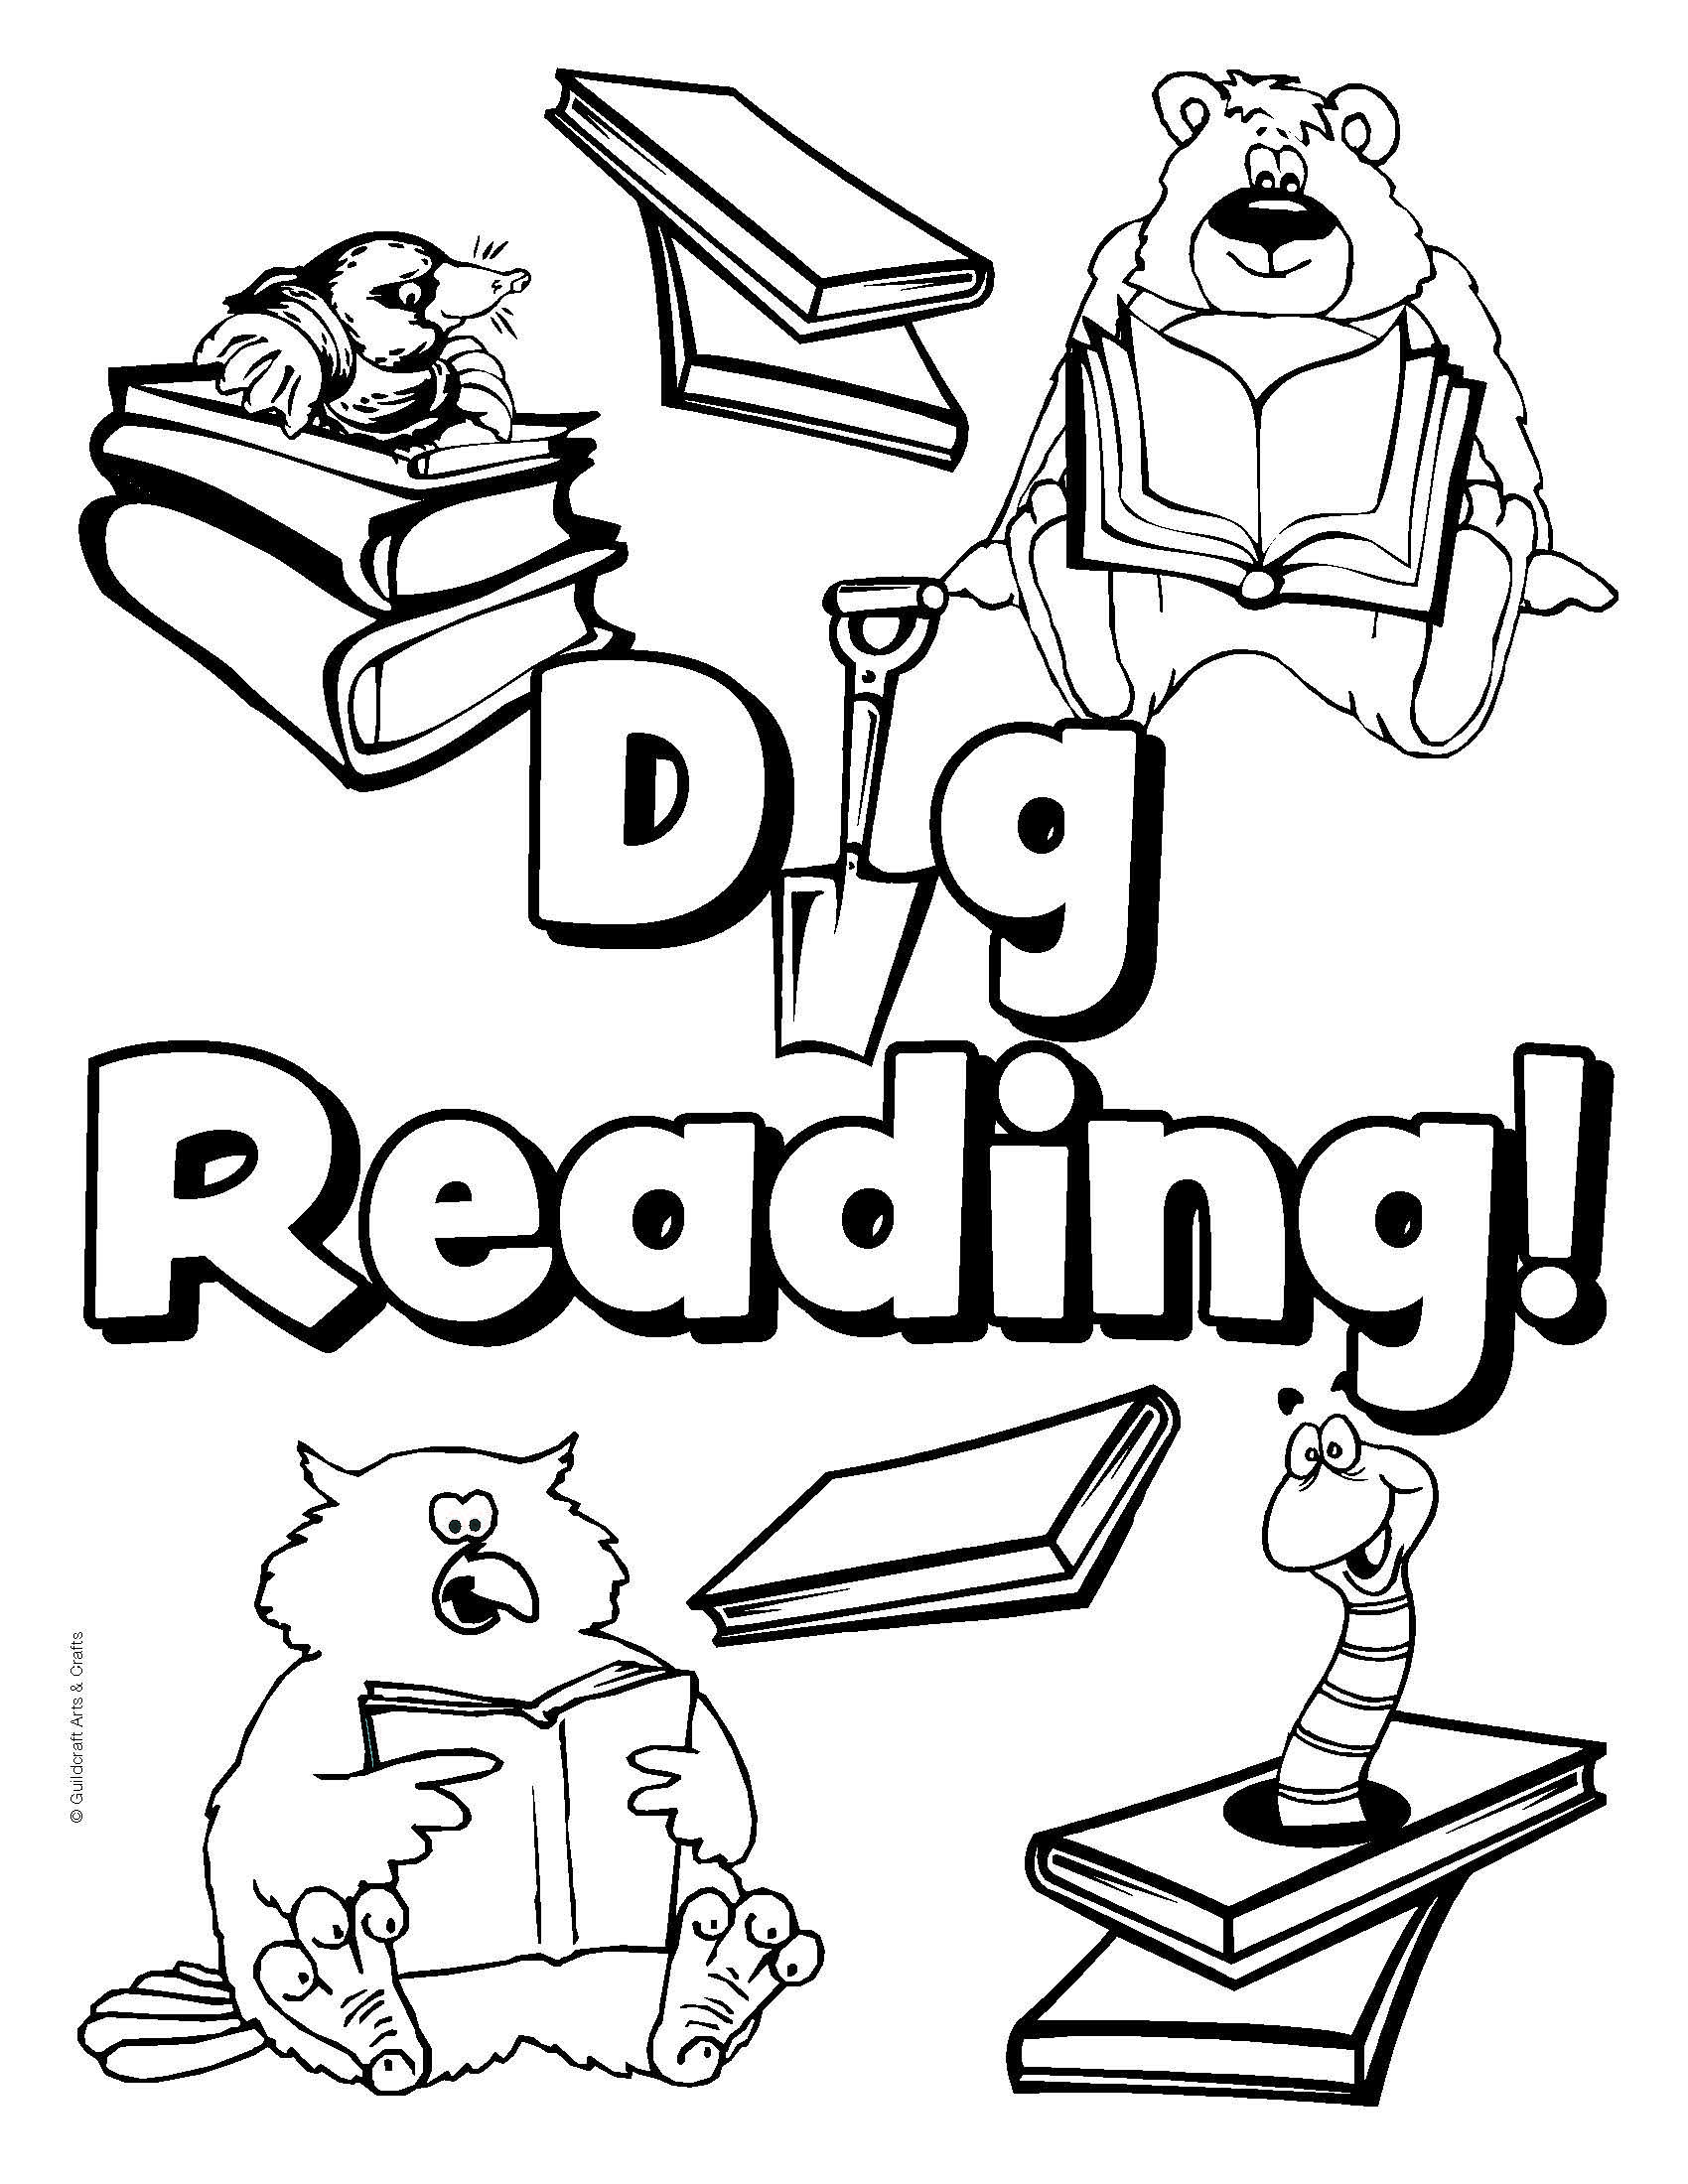 Guildcraft Dig It Coloring Sheet With Images